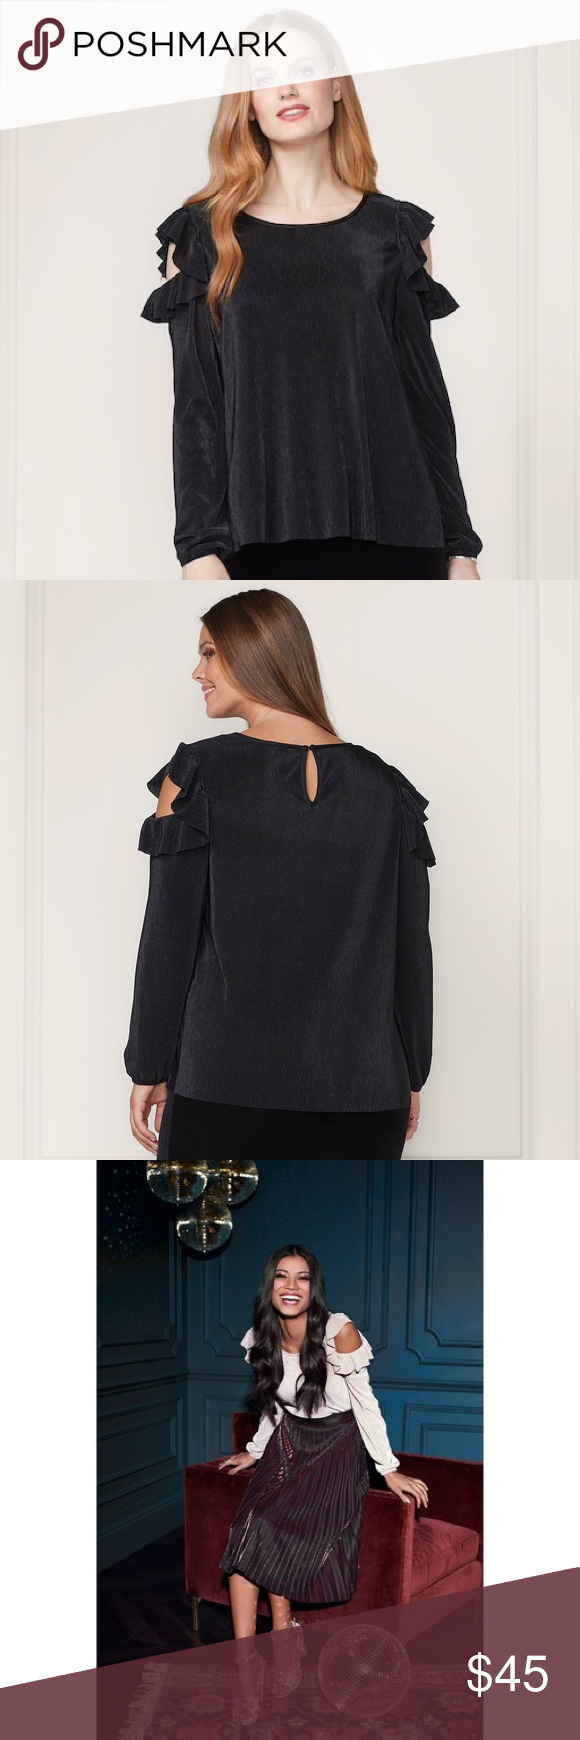 3f334cd34 LC Lauren Conrad Black Pleated Cold Shoulder Top S Modern femininity  abounds in this women's black